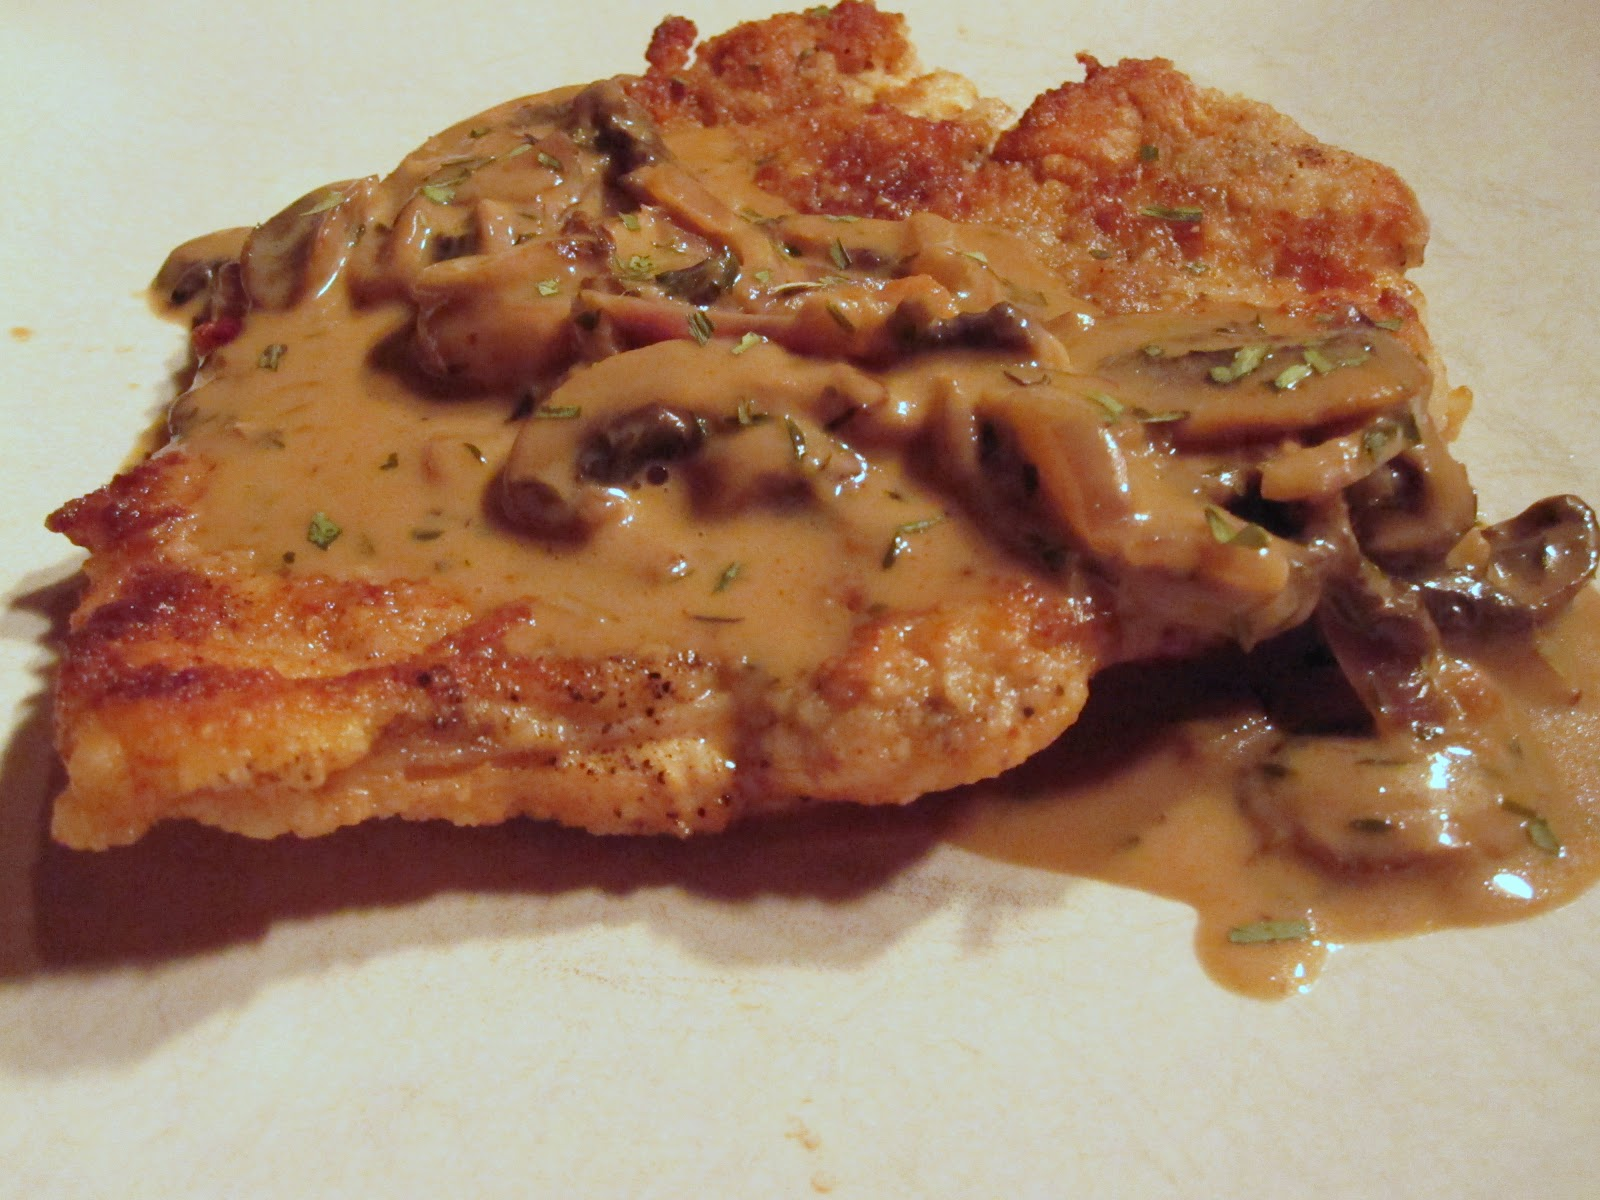 Whippet - Up!: Chicken Breast with Creamy Herbed Mushroom Sauce